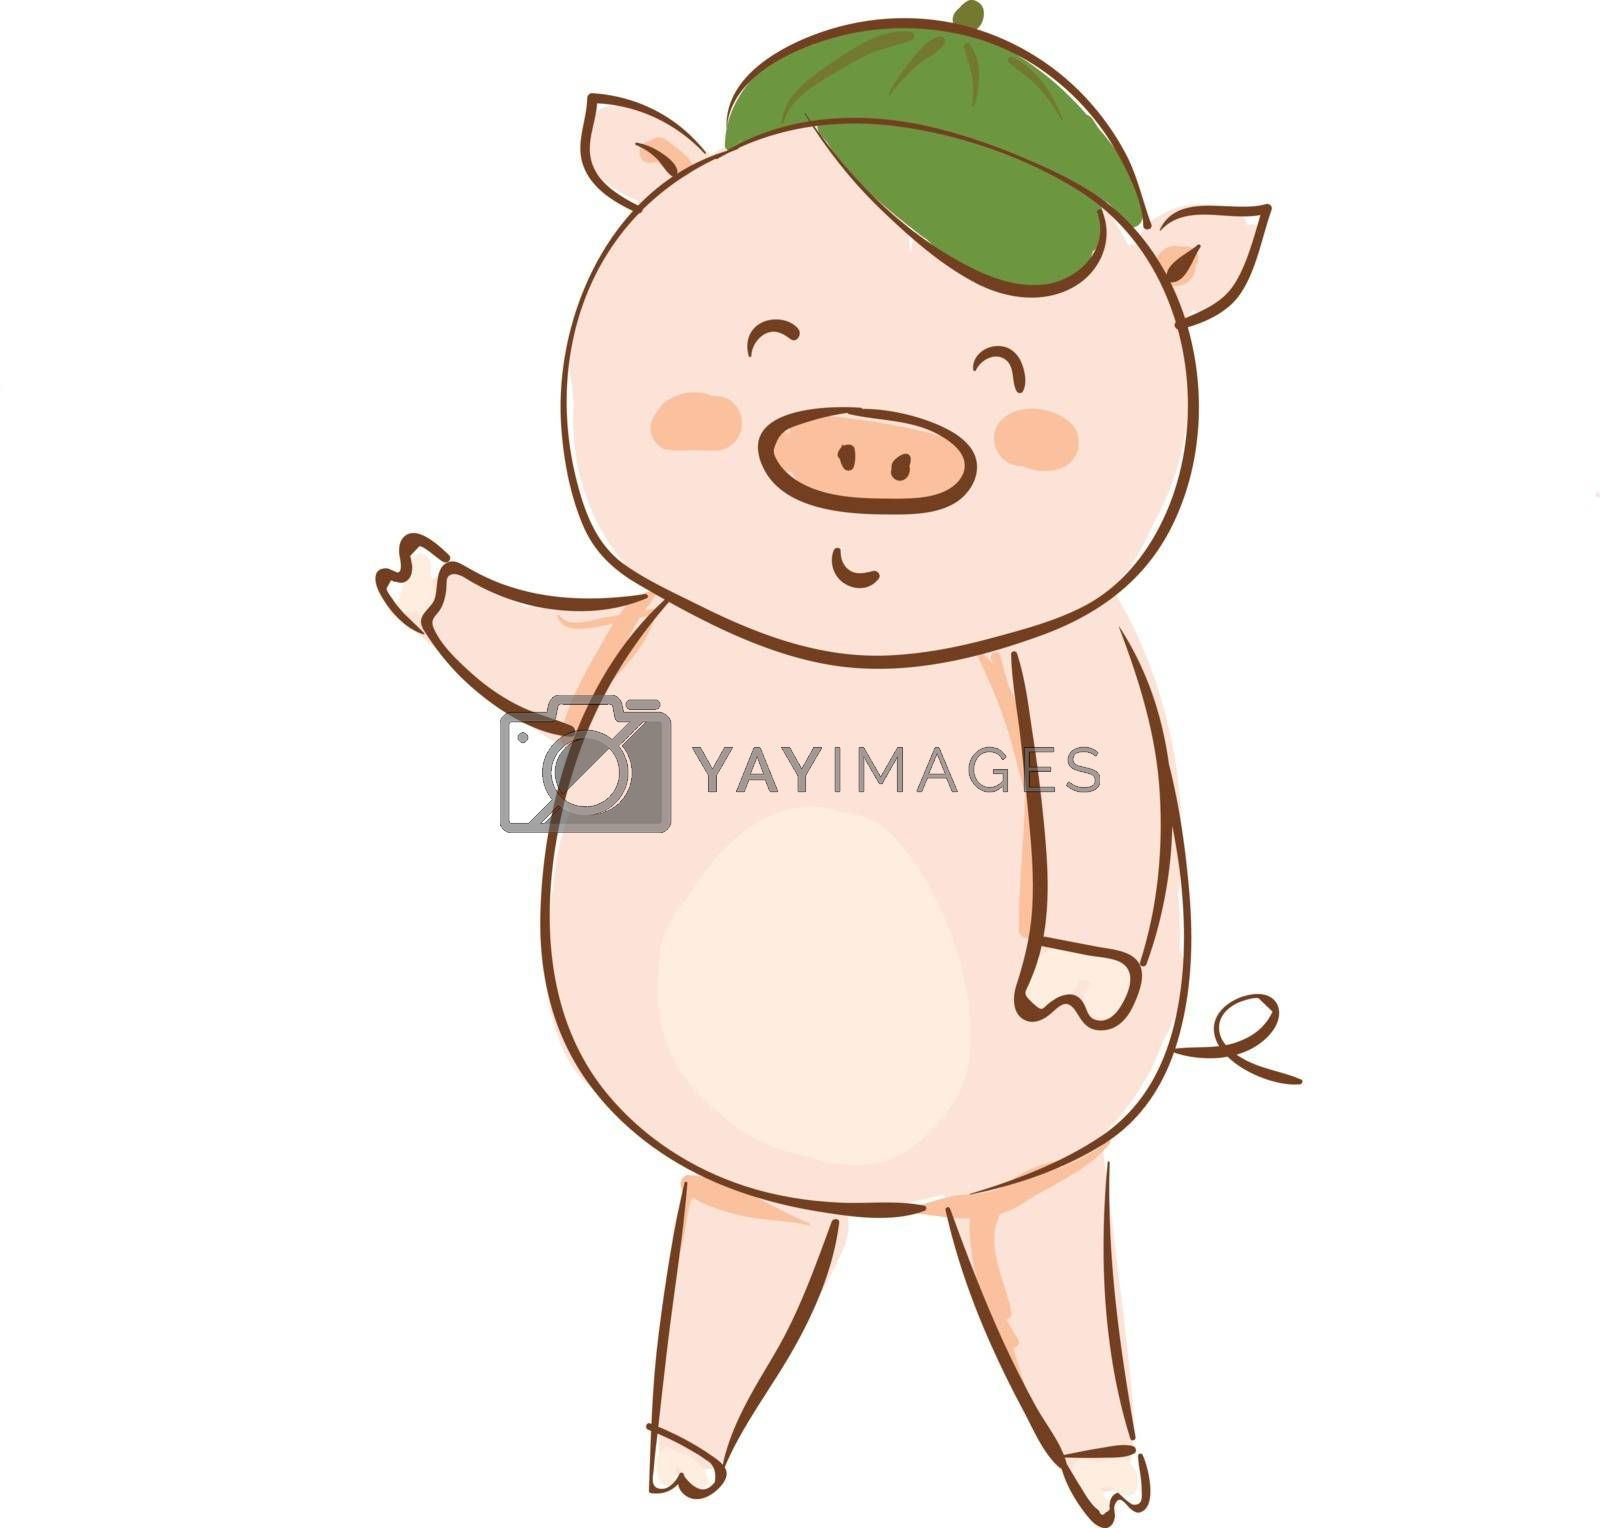 Royalty free image of Drawing of a cartoon pig in a green summer cap waving his hand v by Morphart